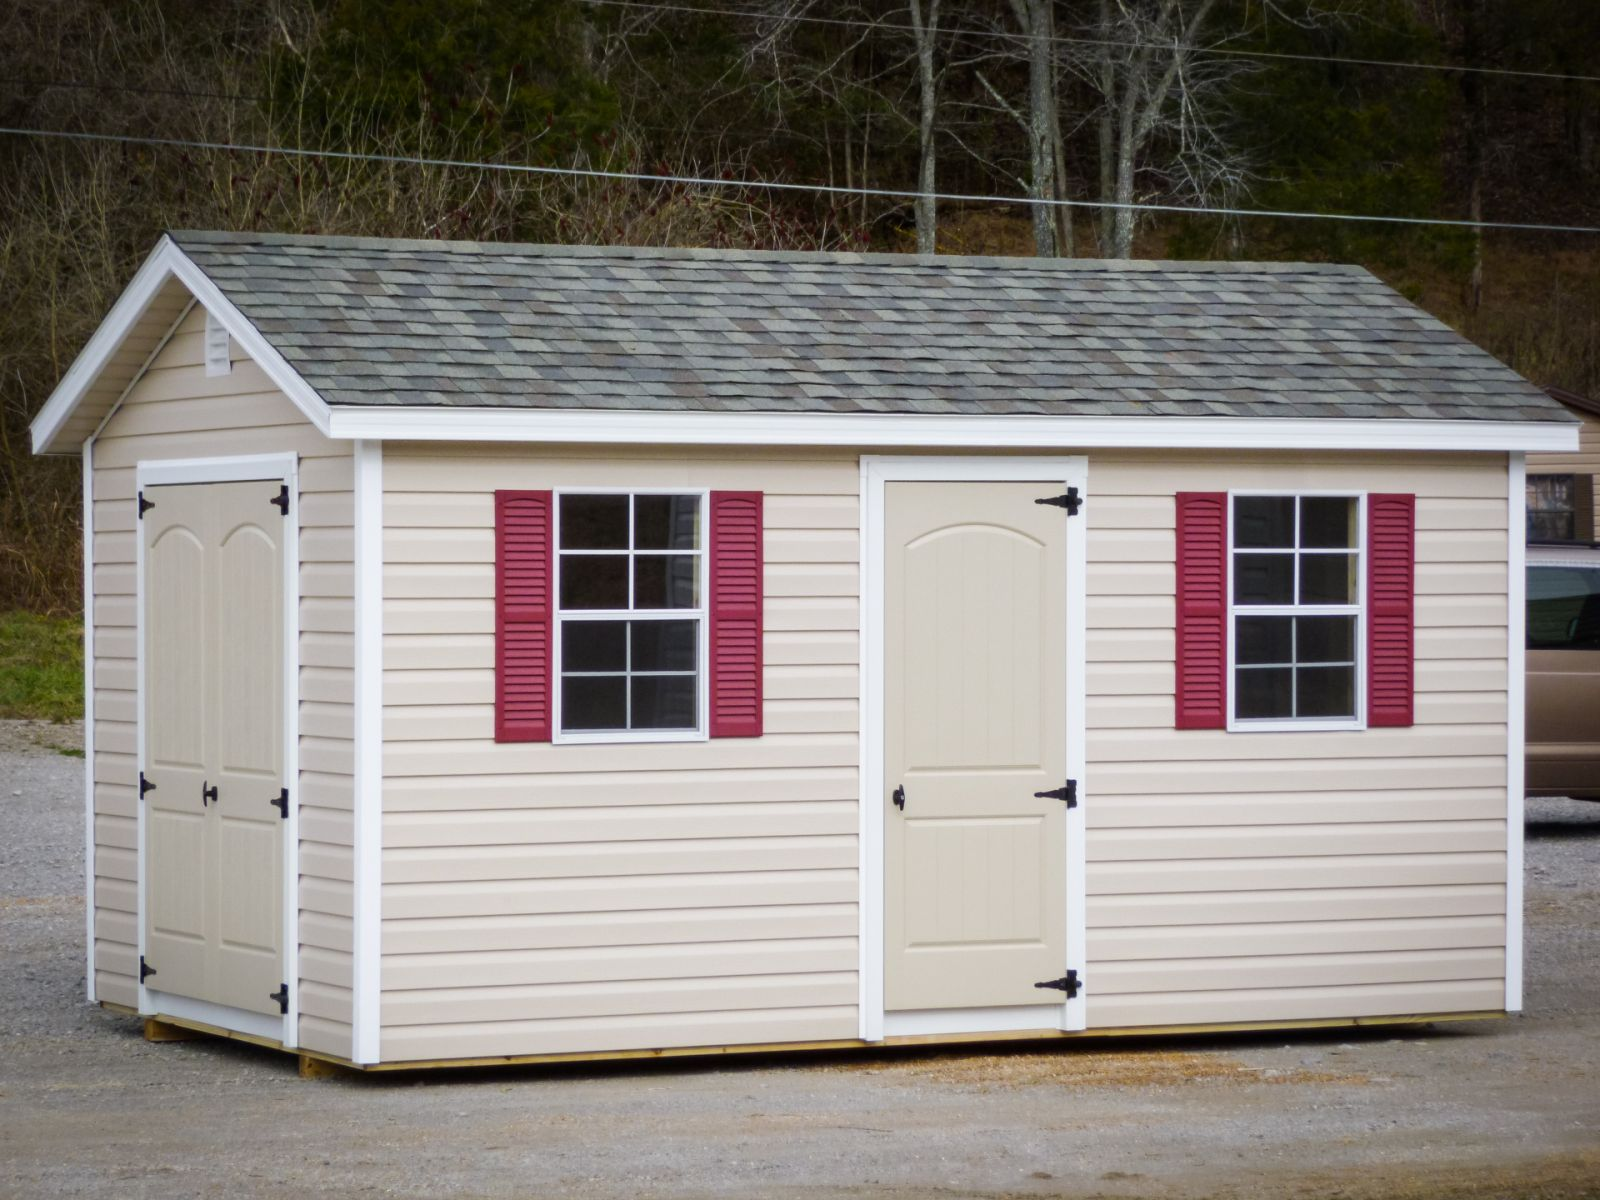 A storage shed in Kentucky with vinyl siding, double doors, and windows with red shutters